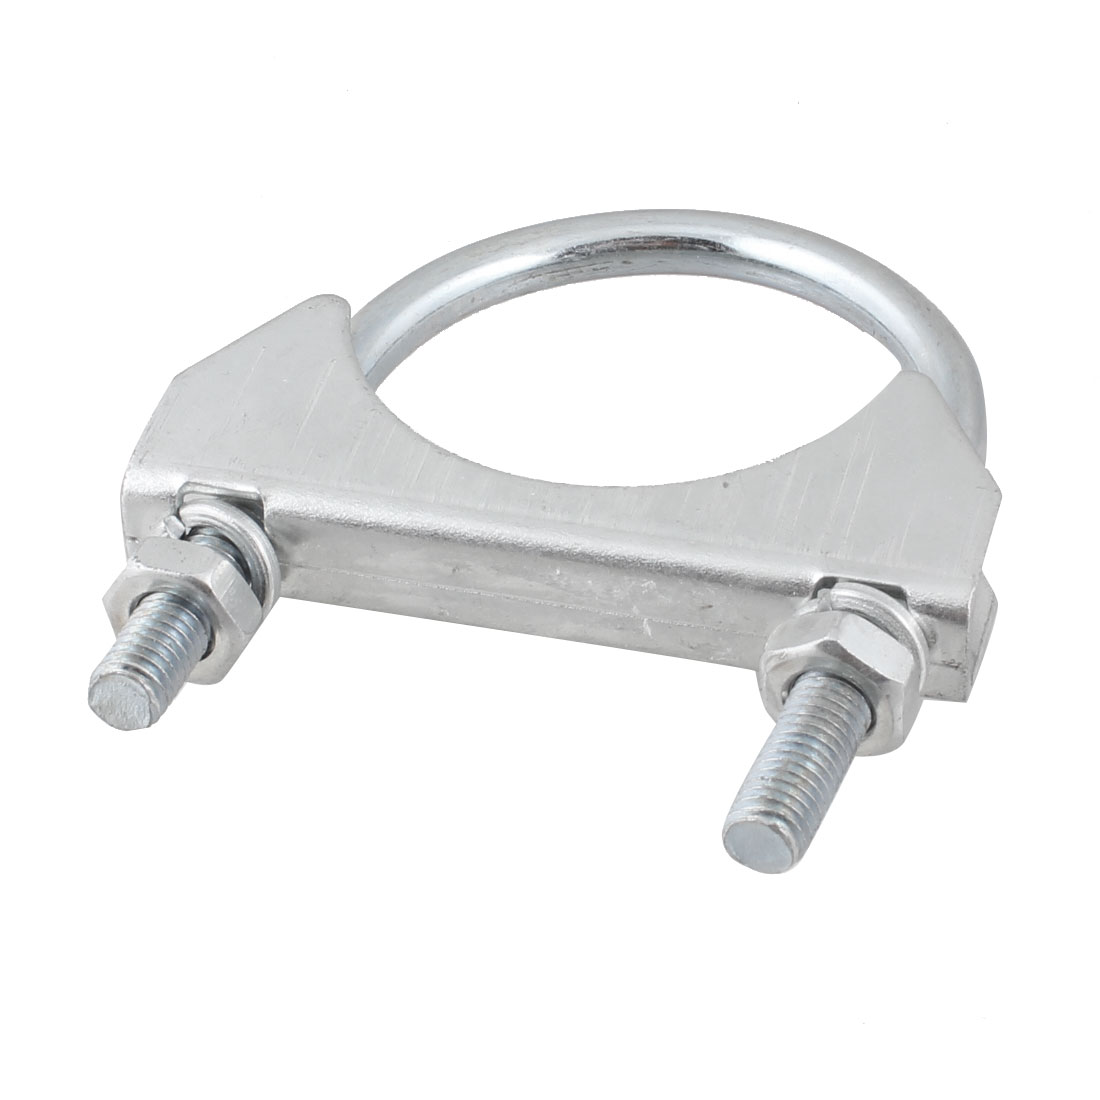 Silver Tone Metal 8mm Thread Dia U-Bolt Boat Toggle Clamp for Pipe